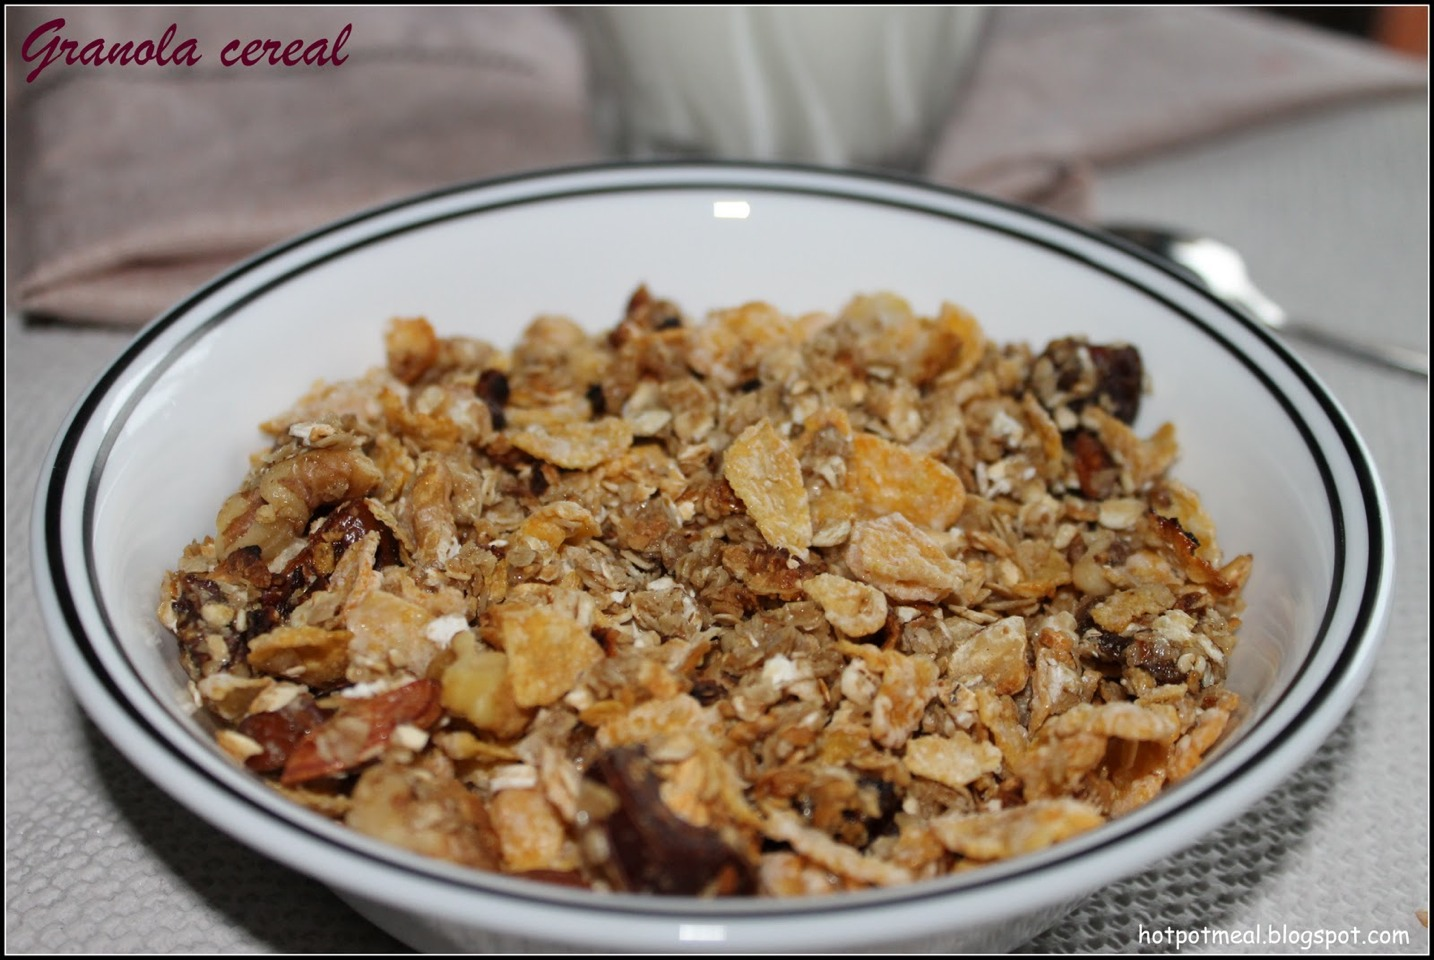 2. Granola: The cereal itself is actually fattening. That's because granola cereals contain oils, including high in saturated fat coconut oil, sugar, nuts and other high calorie foods. One cup of granola can contain as much as 25 grams of sugar alone! Granola is not all bad, but limit your intake.